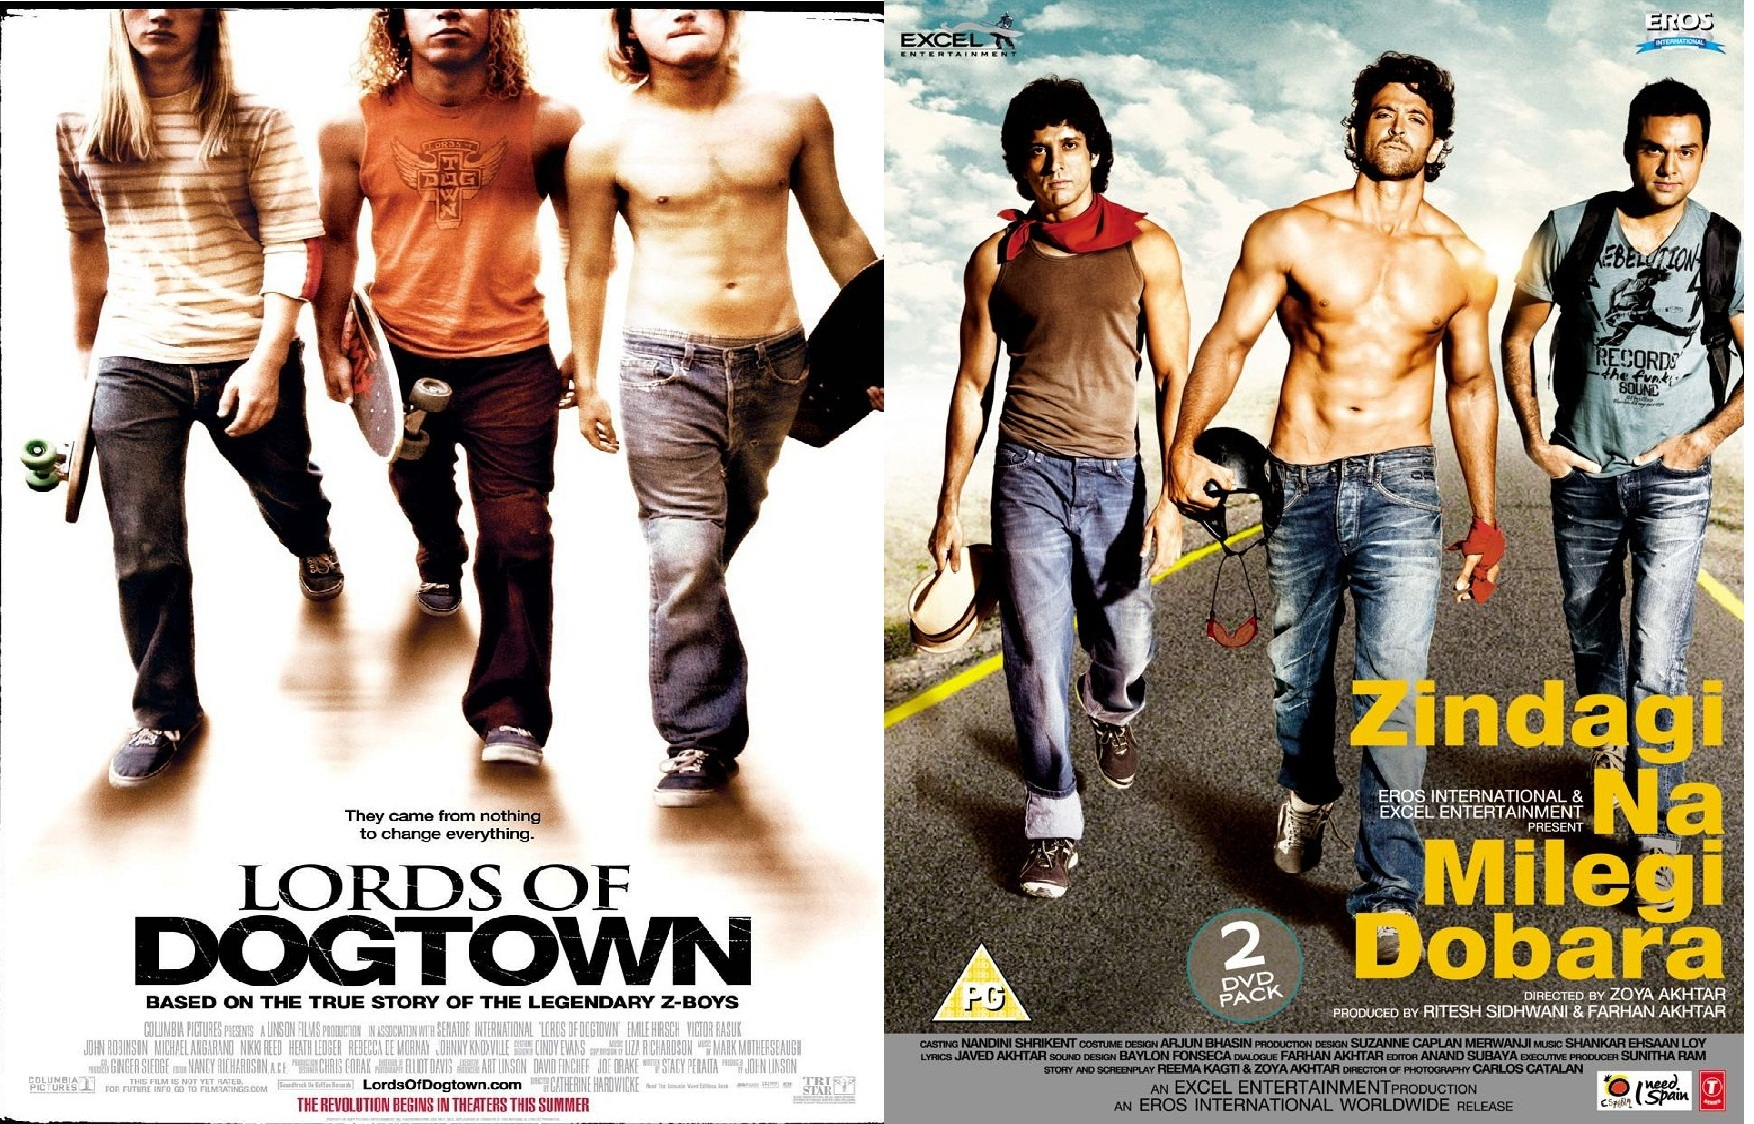 Lords-of-Dogtown-Poster-lords-of-dogtown-19550800-1009-1500